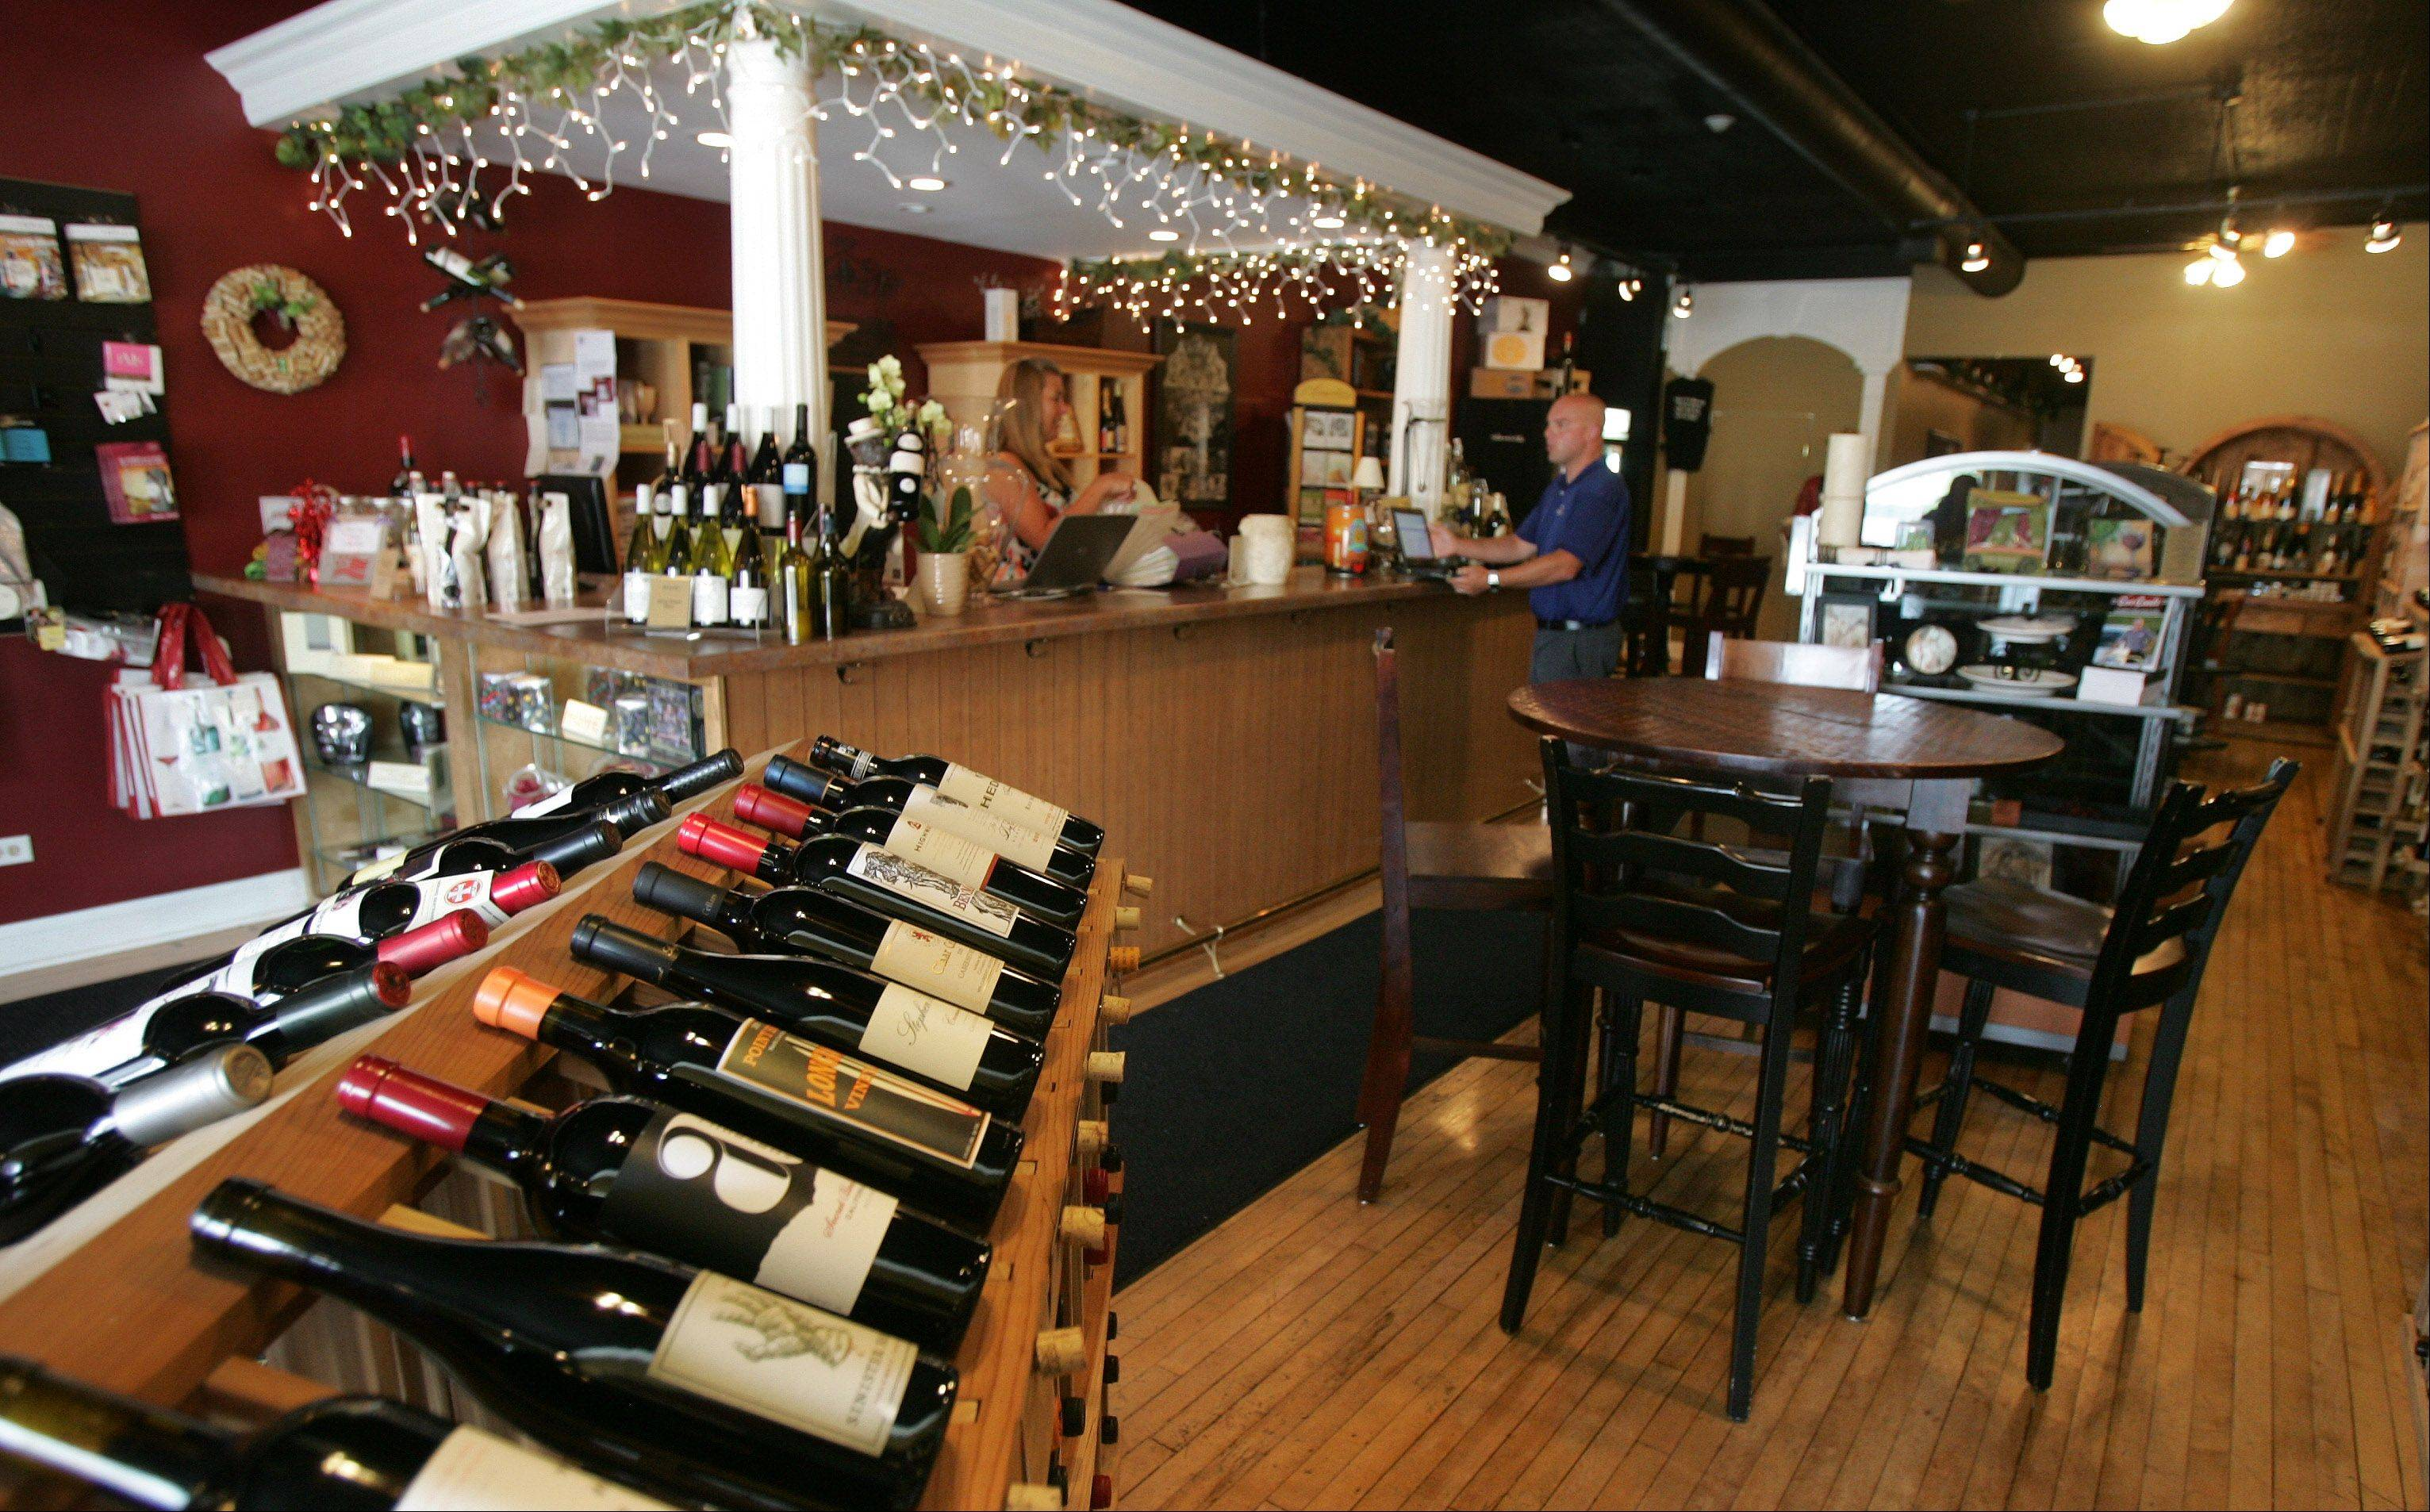 Bliss Wine & Gifts offers wine and appetizers and seating to enjoy takeout from nearby restaurants. Downtown Wauconda is going through a change as the local bars and restaurants are giving way to greater diversity that is attracting people from outside the village.